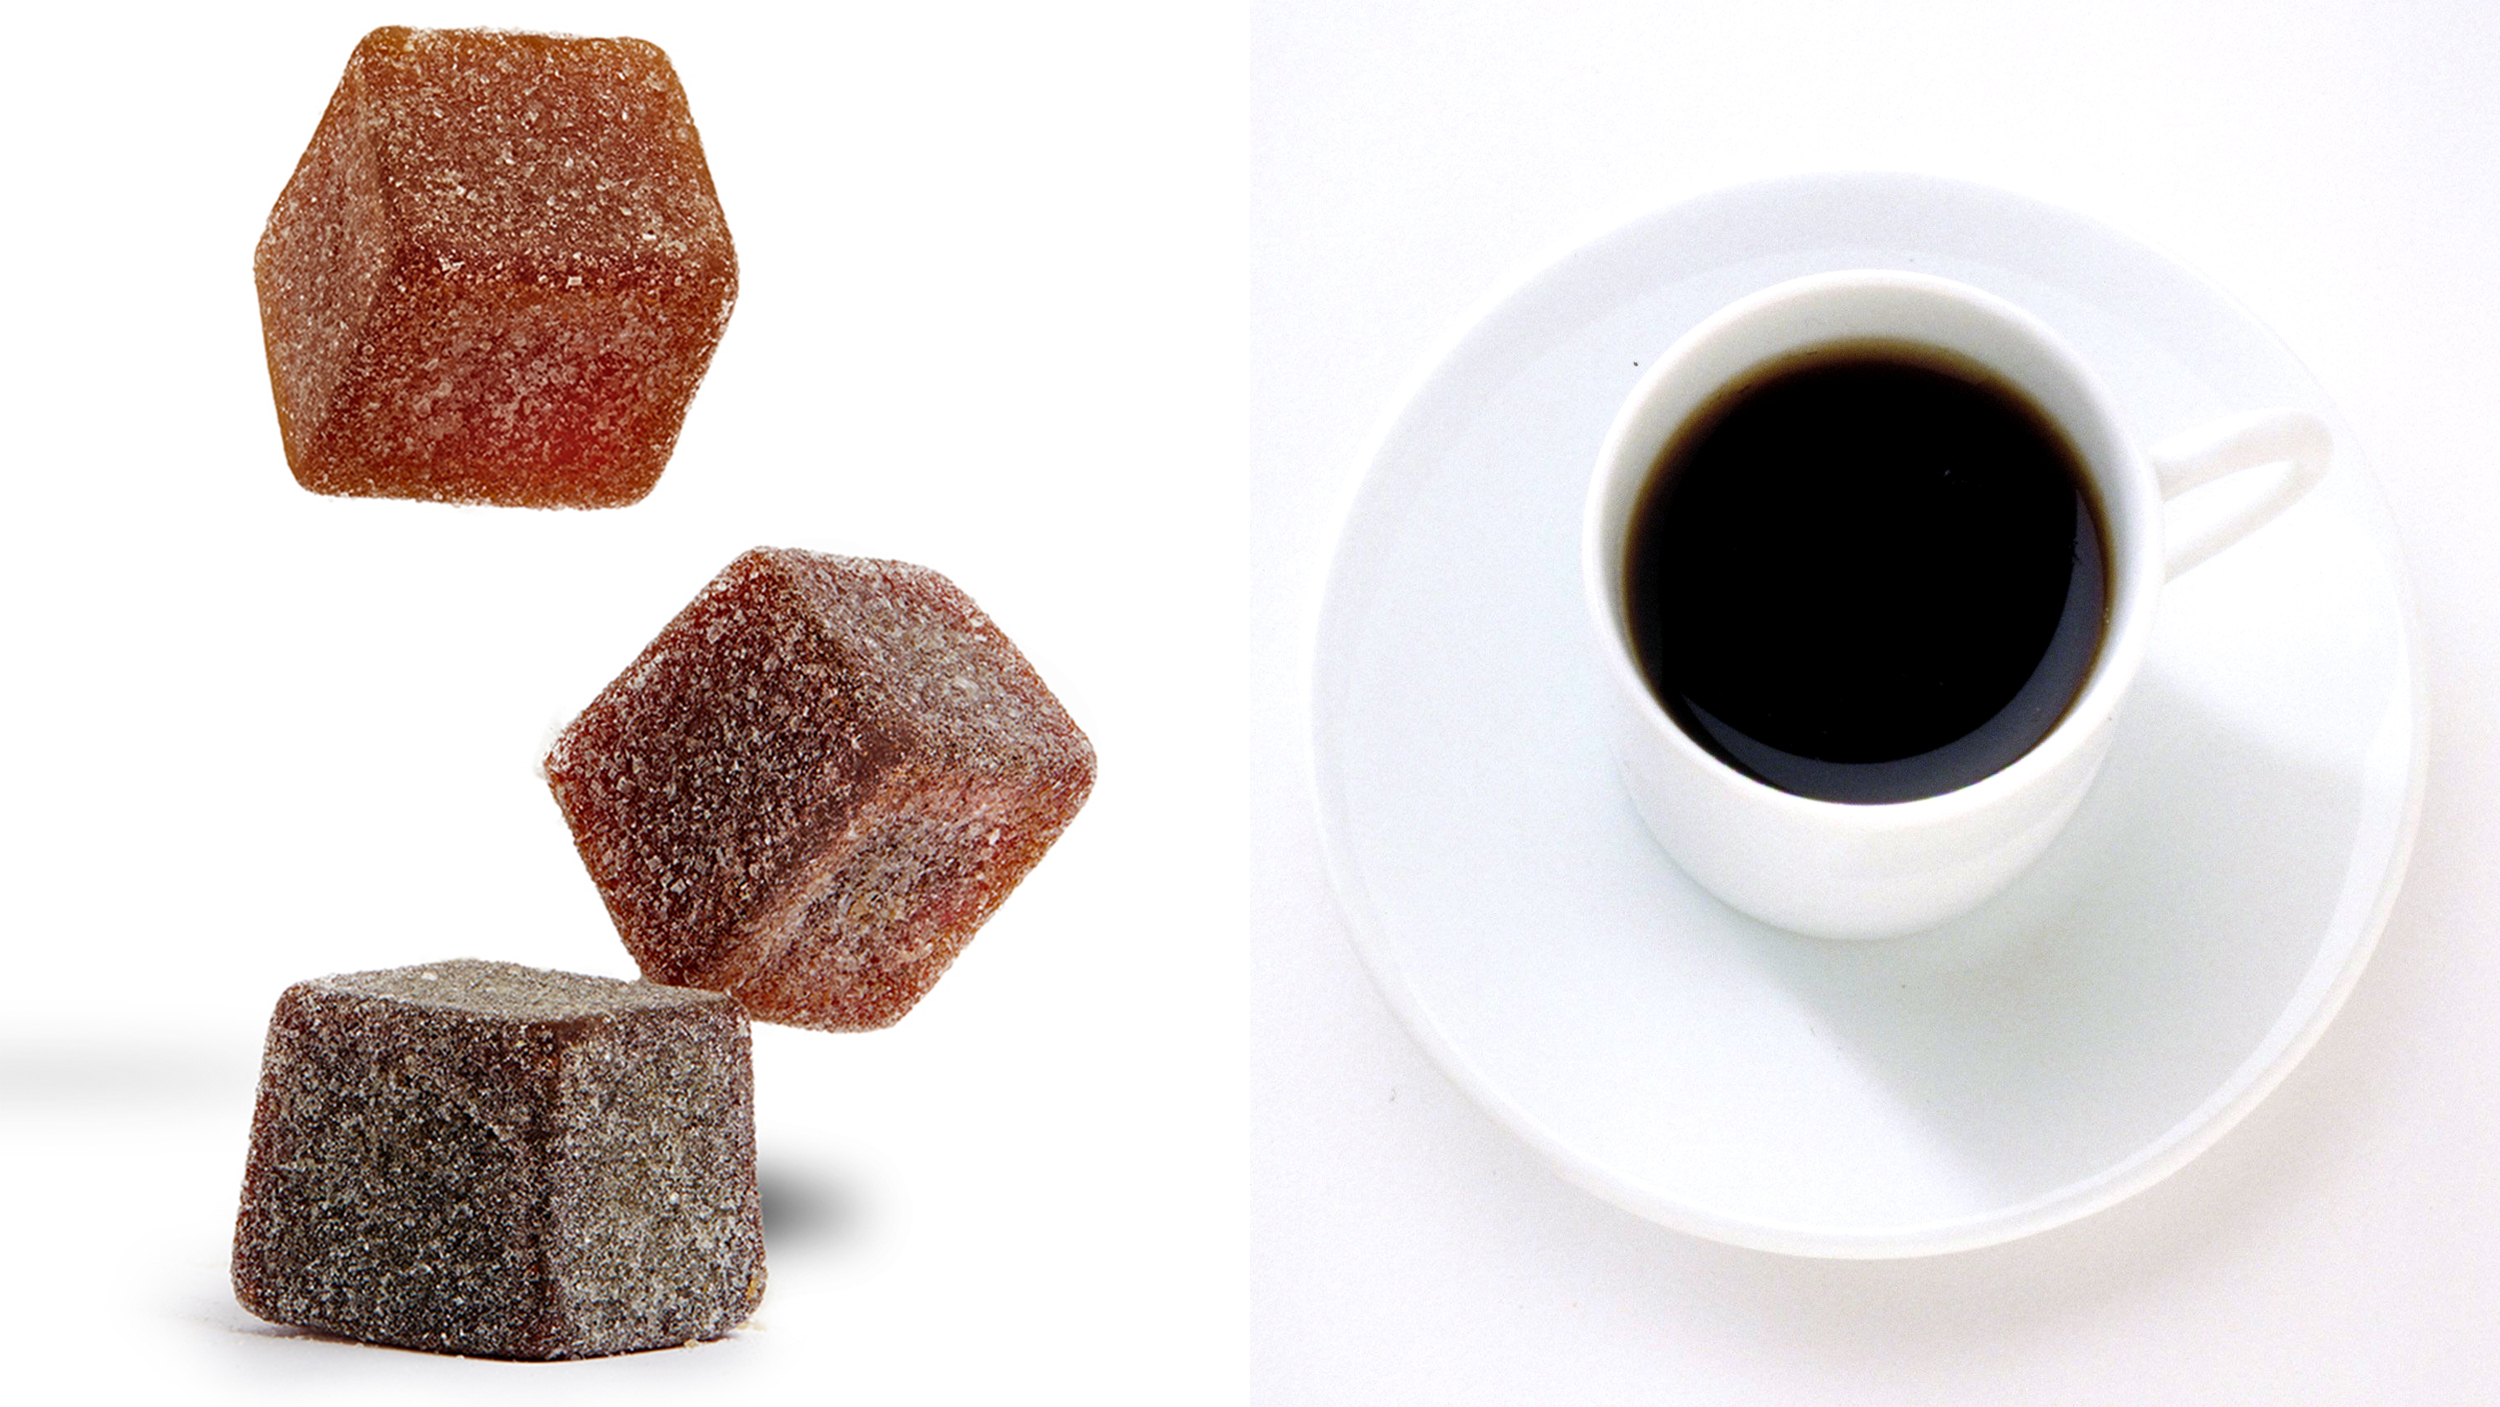 Chewable Coffee Testing The New Trend Of Caffeine Infused Gummies